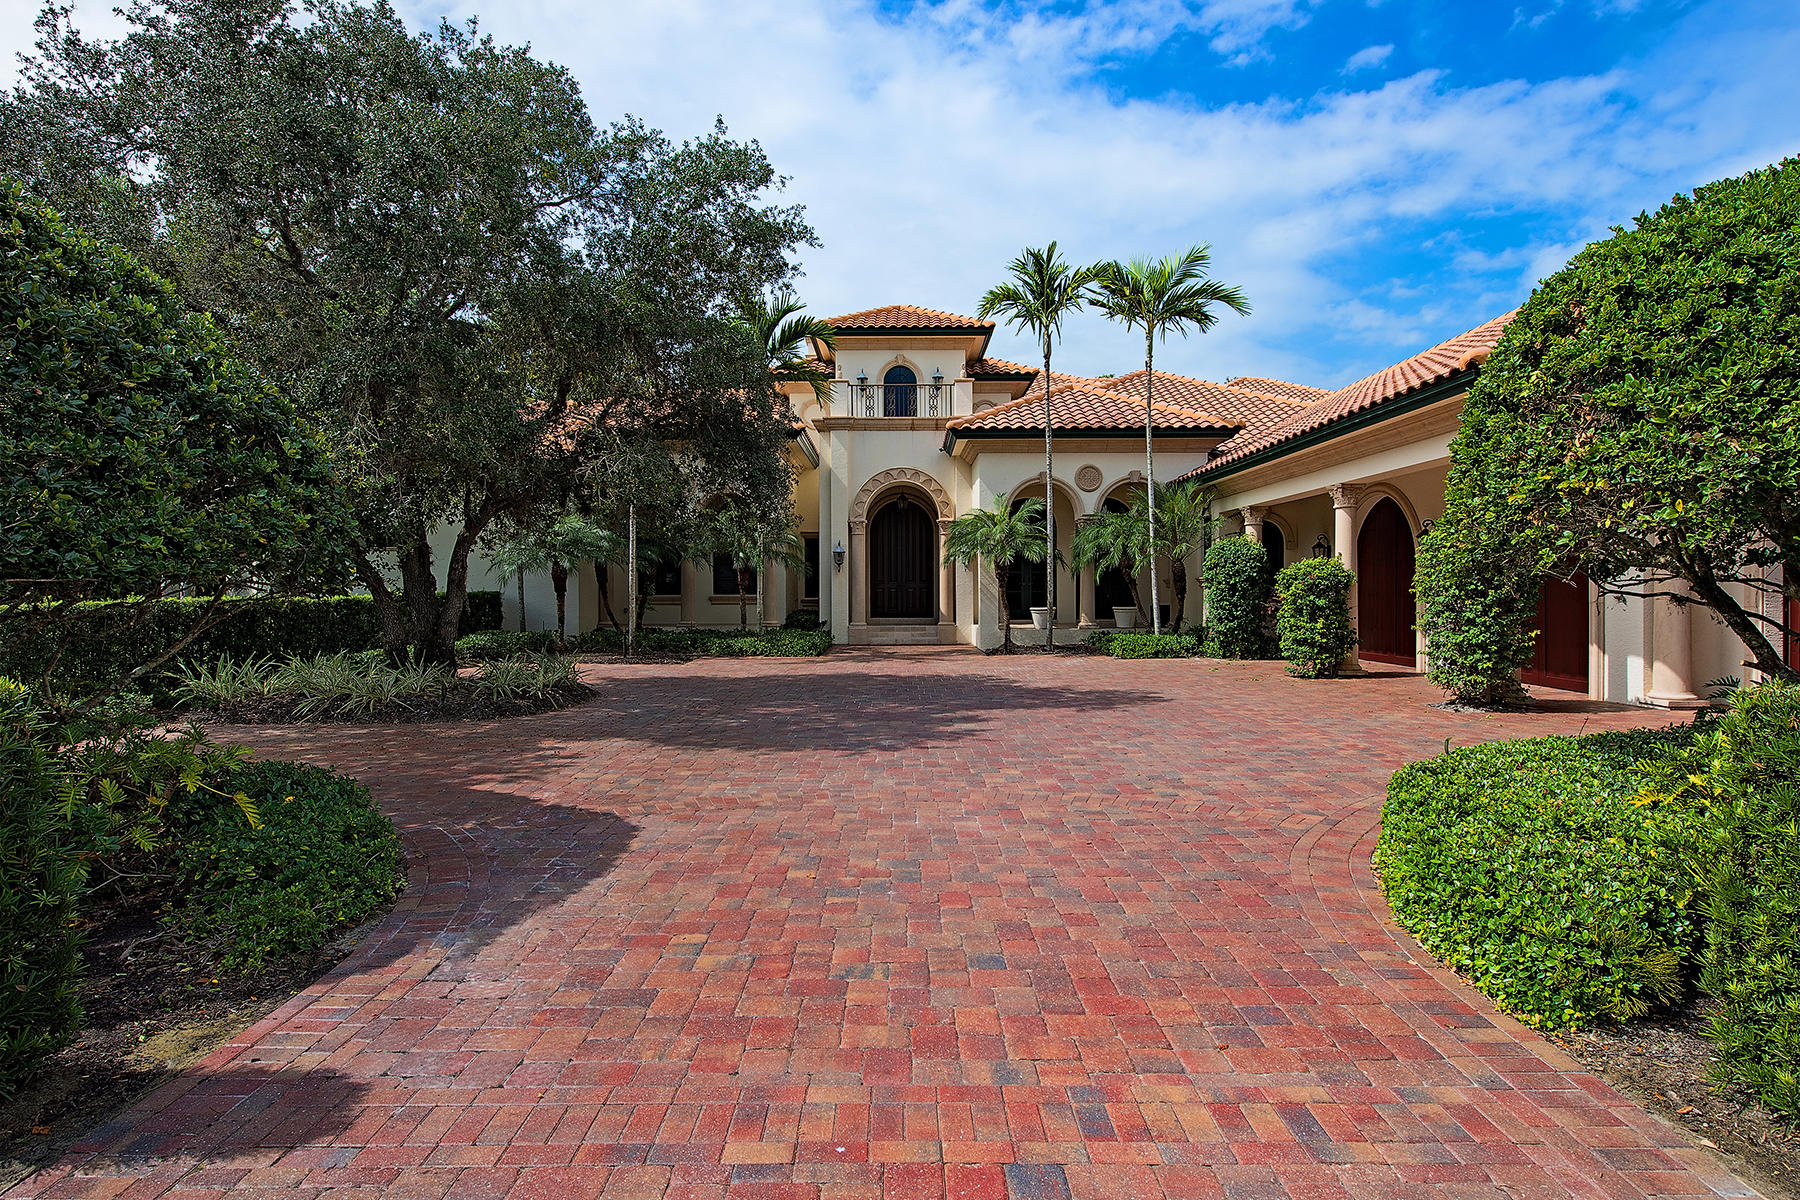 Villa per Vendita alle ore GREY OAKS - ESTATES AT GREY OAKS 2817 Thistle Way Naples, Florida, 34105 Stati Uniti